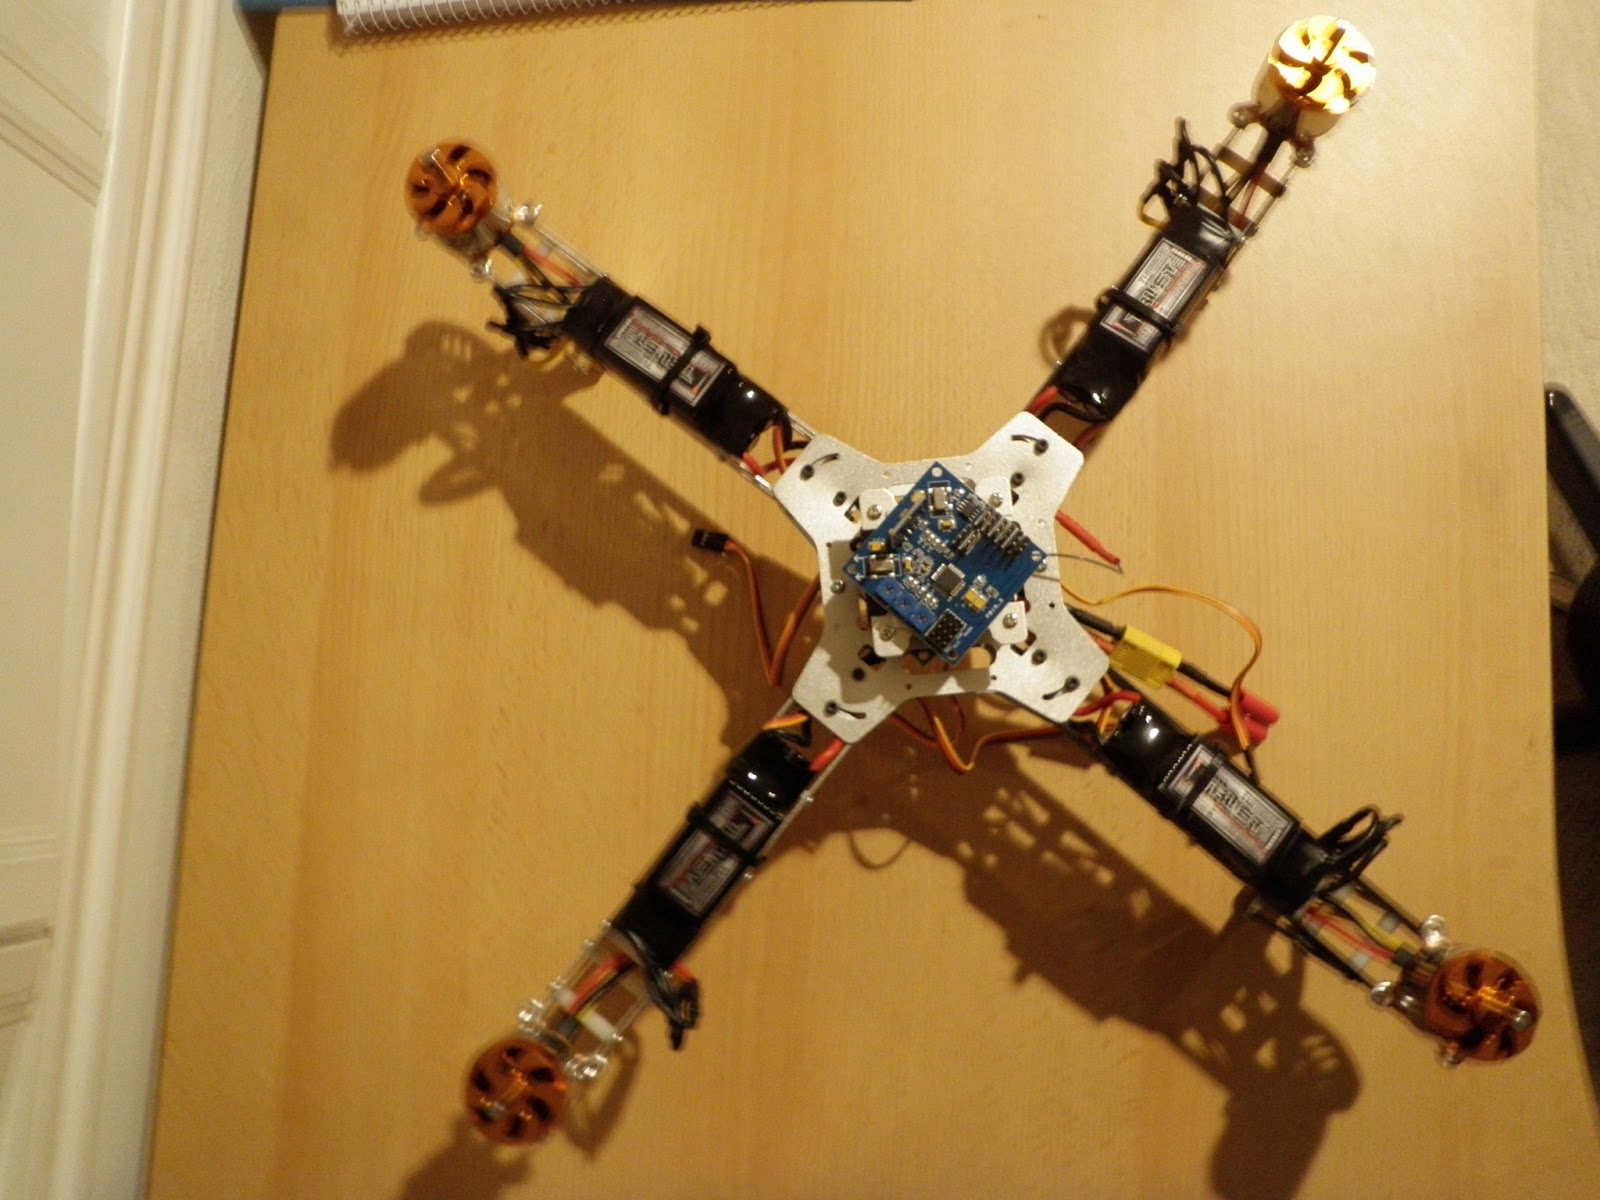 Beginner QuadCopter Project: Electronics Hookup and Frame Reassembly